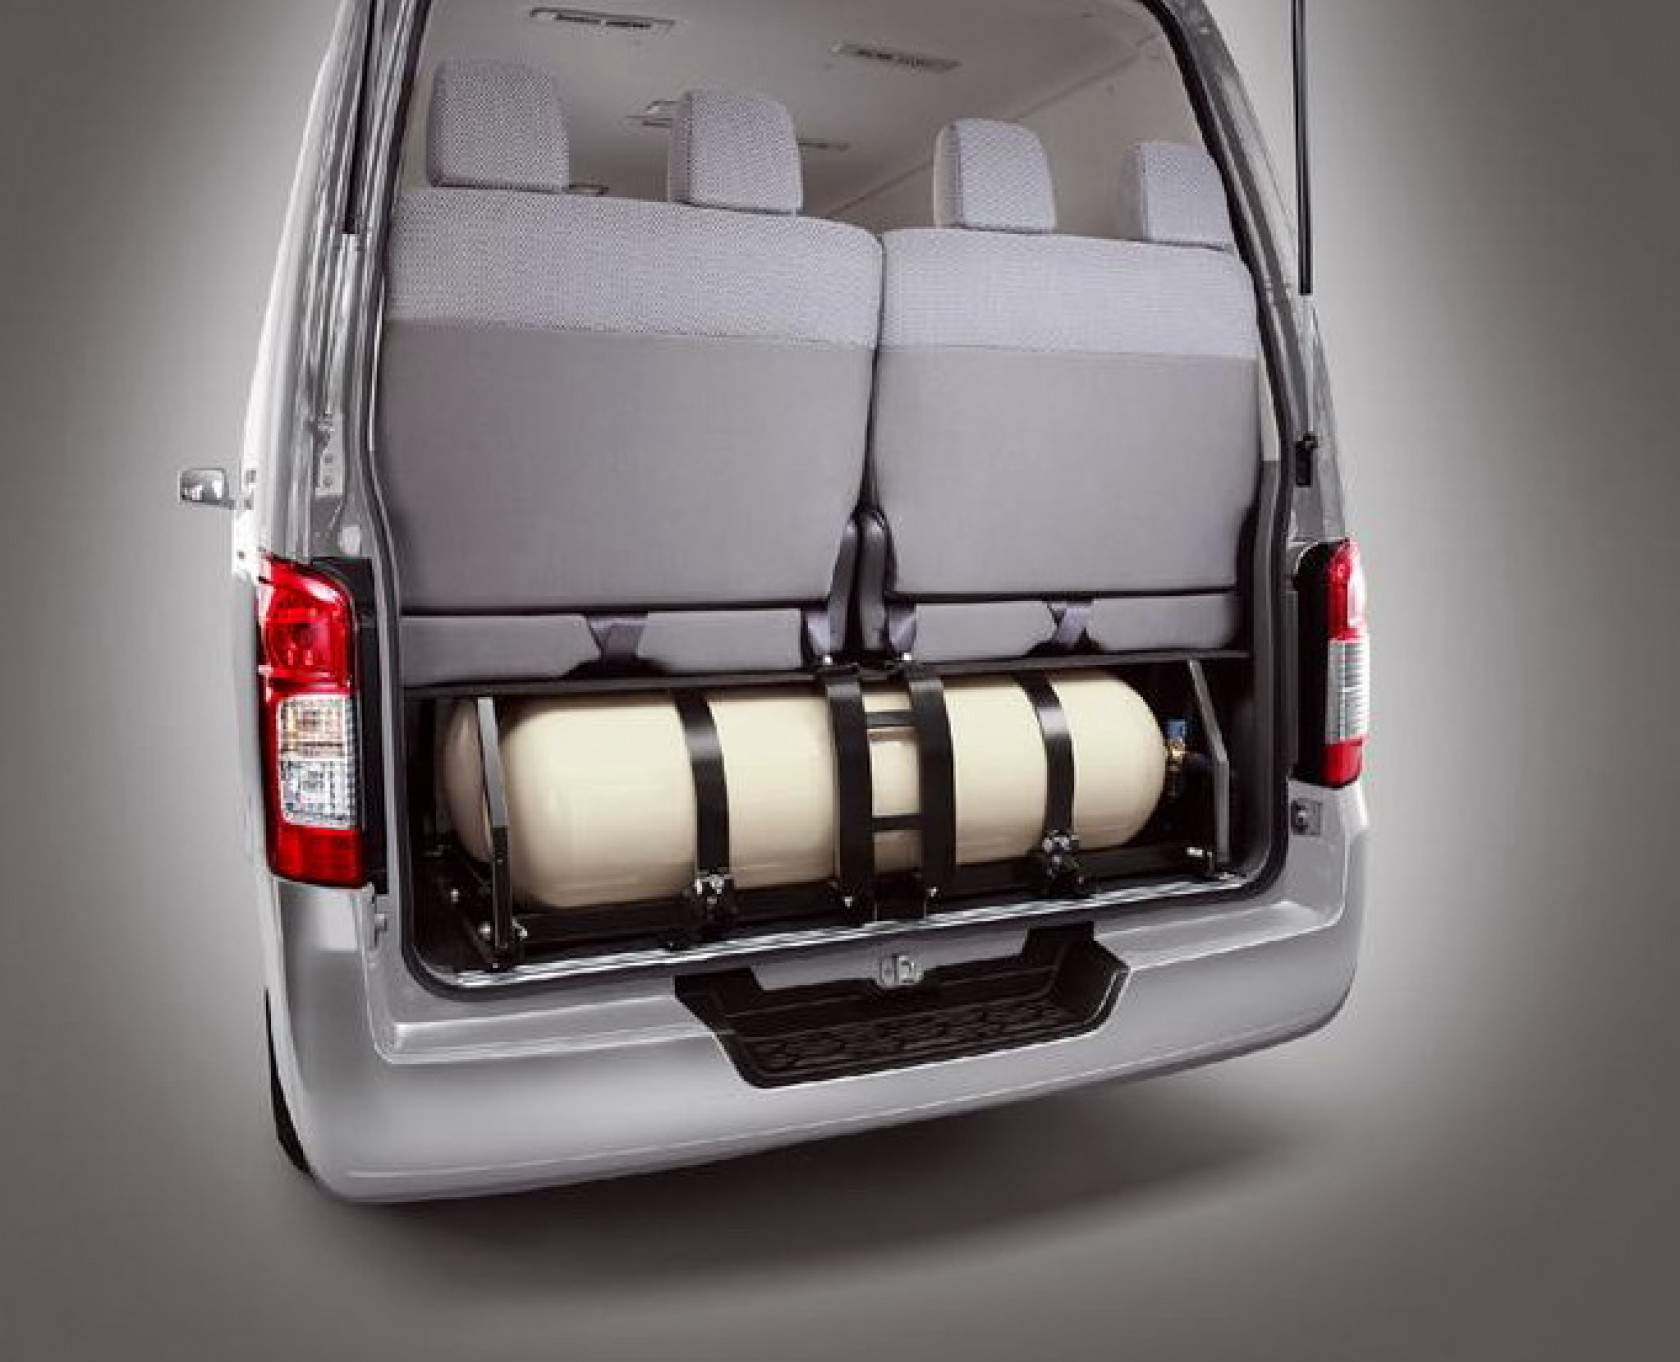 nissan nv drive rear minivan reviews features wheel price s photos hd photo cargo van